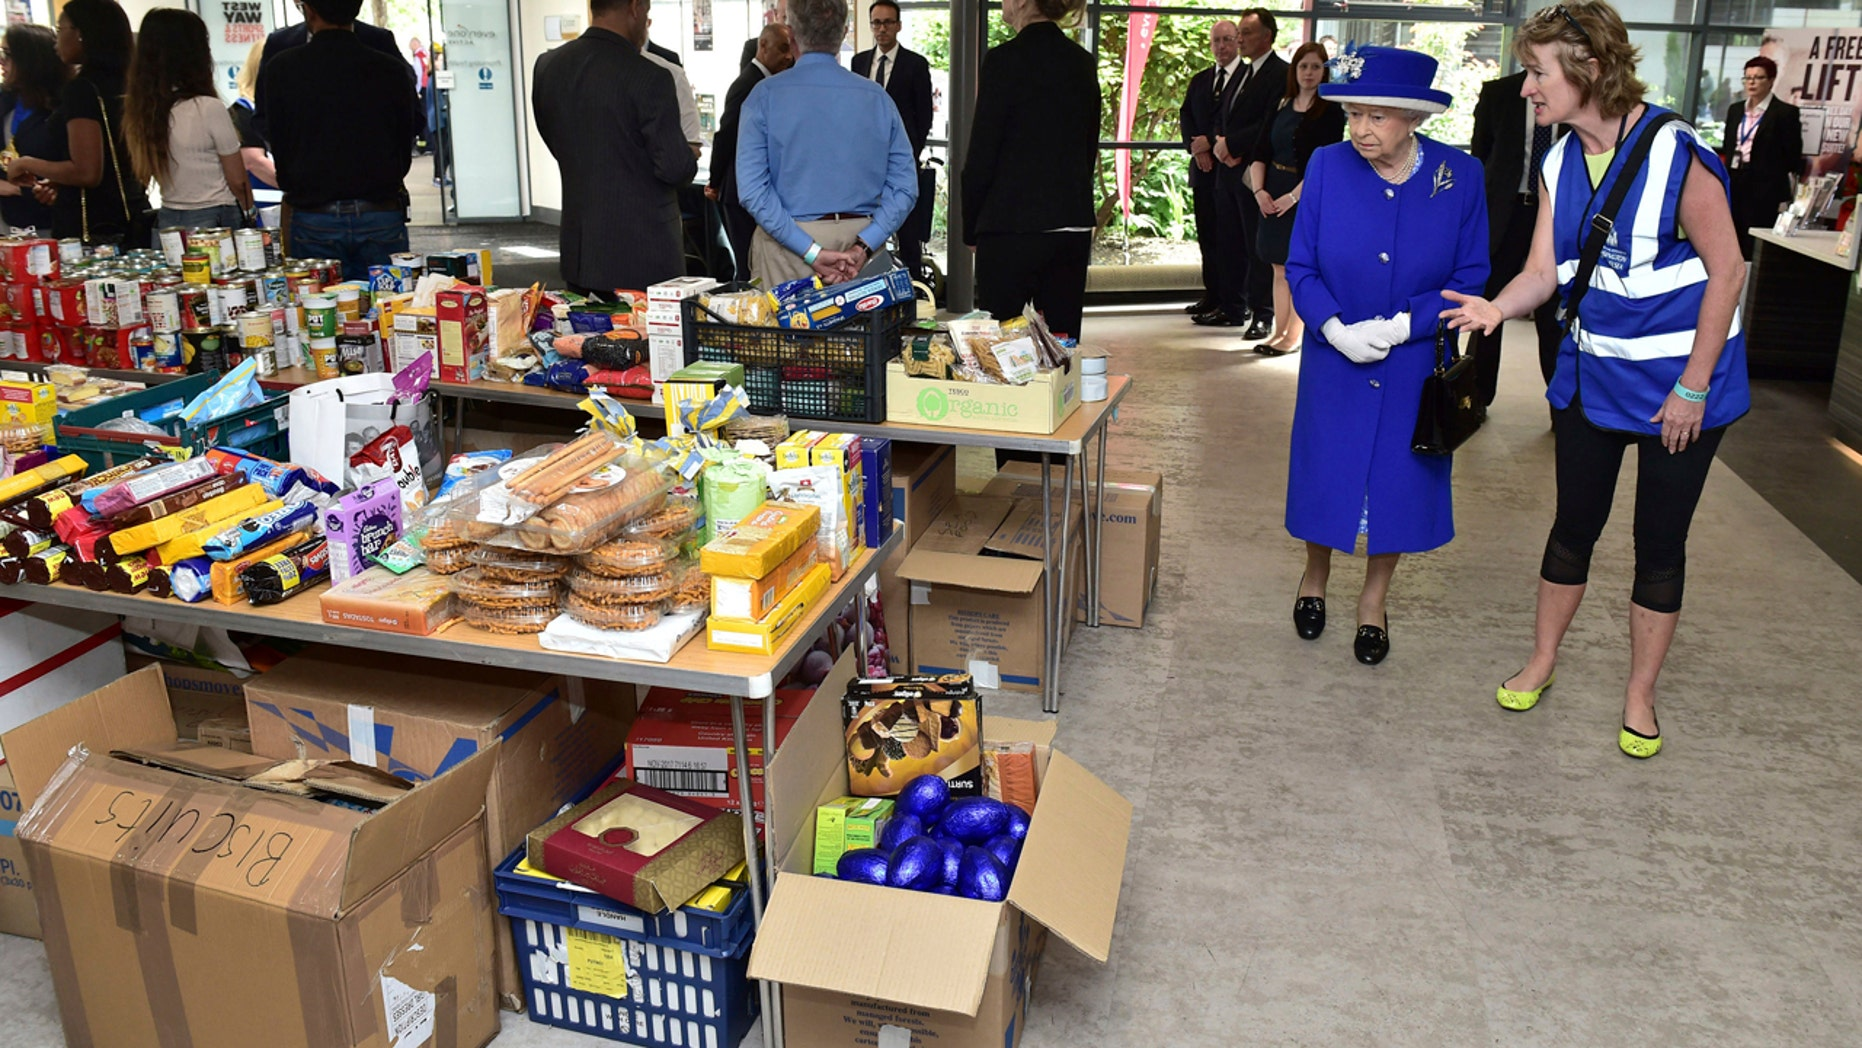 Britain's Queen Elizabeth II, second right, looks at donations made to the members of the community affected by the fire at Grenfell Tower in west London during a visit to the Westway Sports Centre which is providing temporary shelter for those who have been made homeless in the disaster, Friday June 16, 2017.